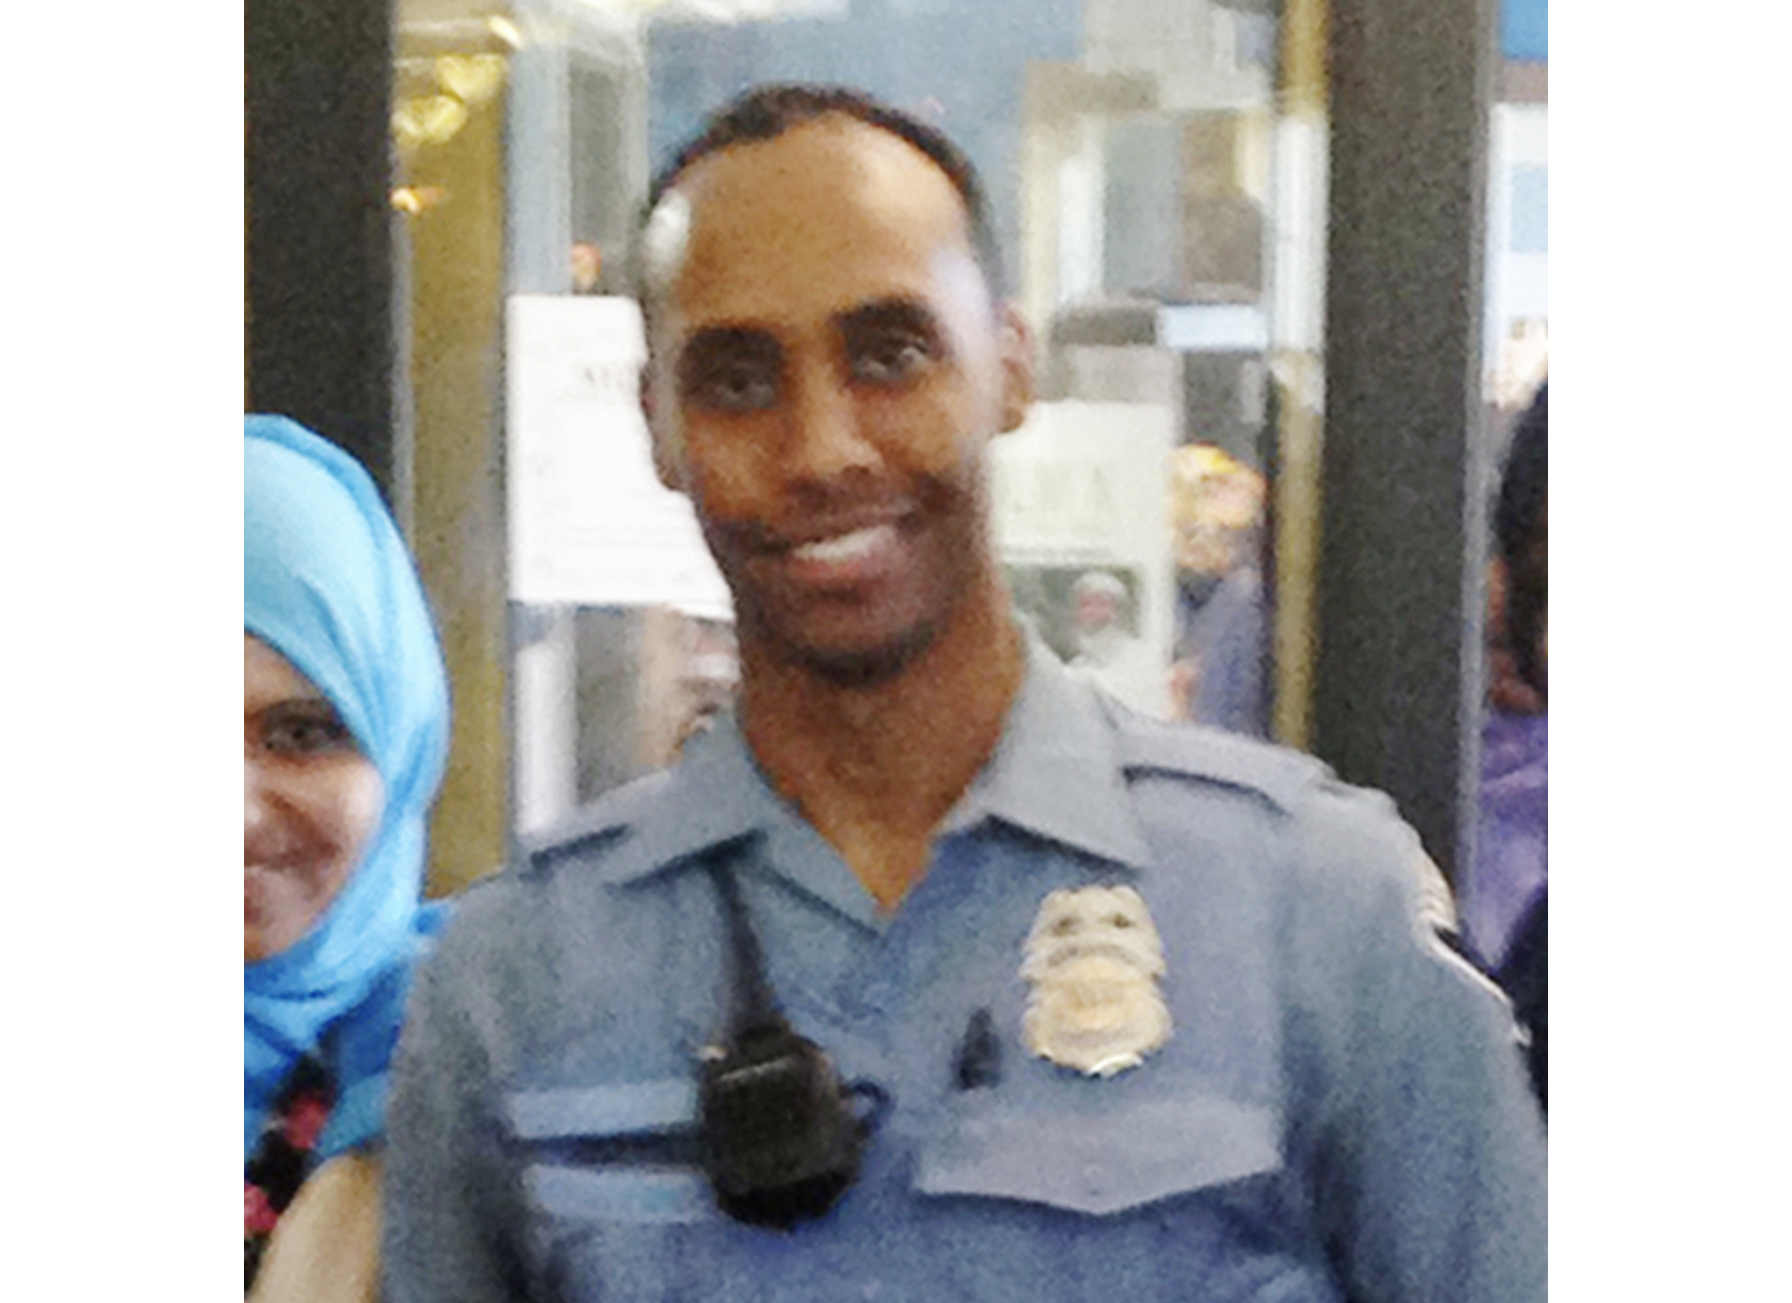 Minneapolis police officer Noor to make 1st court appearance Wednesday